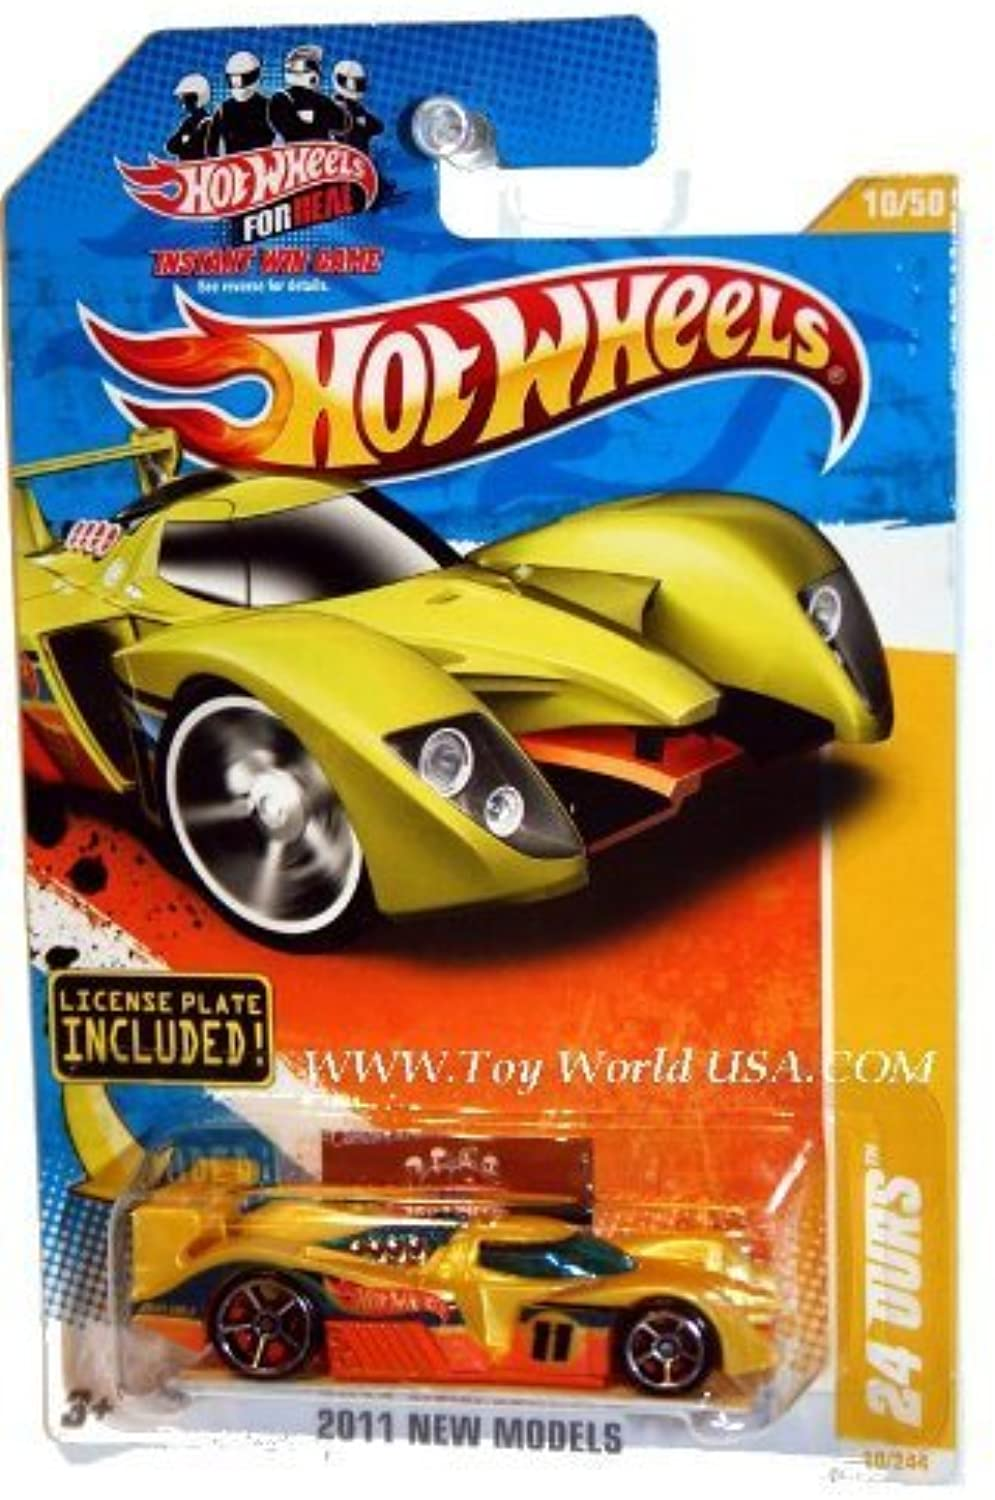 Hot Wheels Gelb 24 OURS  10 244, 2011 New Models  10 50 - w mini License Plate by Hot Wheels B004UZPZLU Offizielle Webseite  | Kompletter Spezifikationsbereich